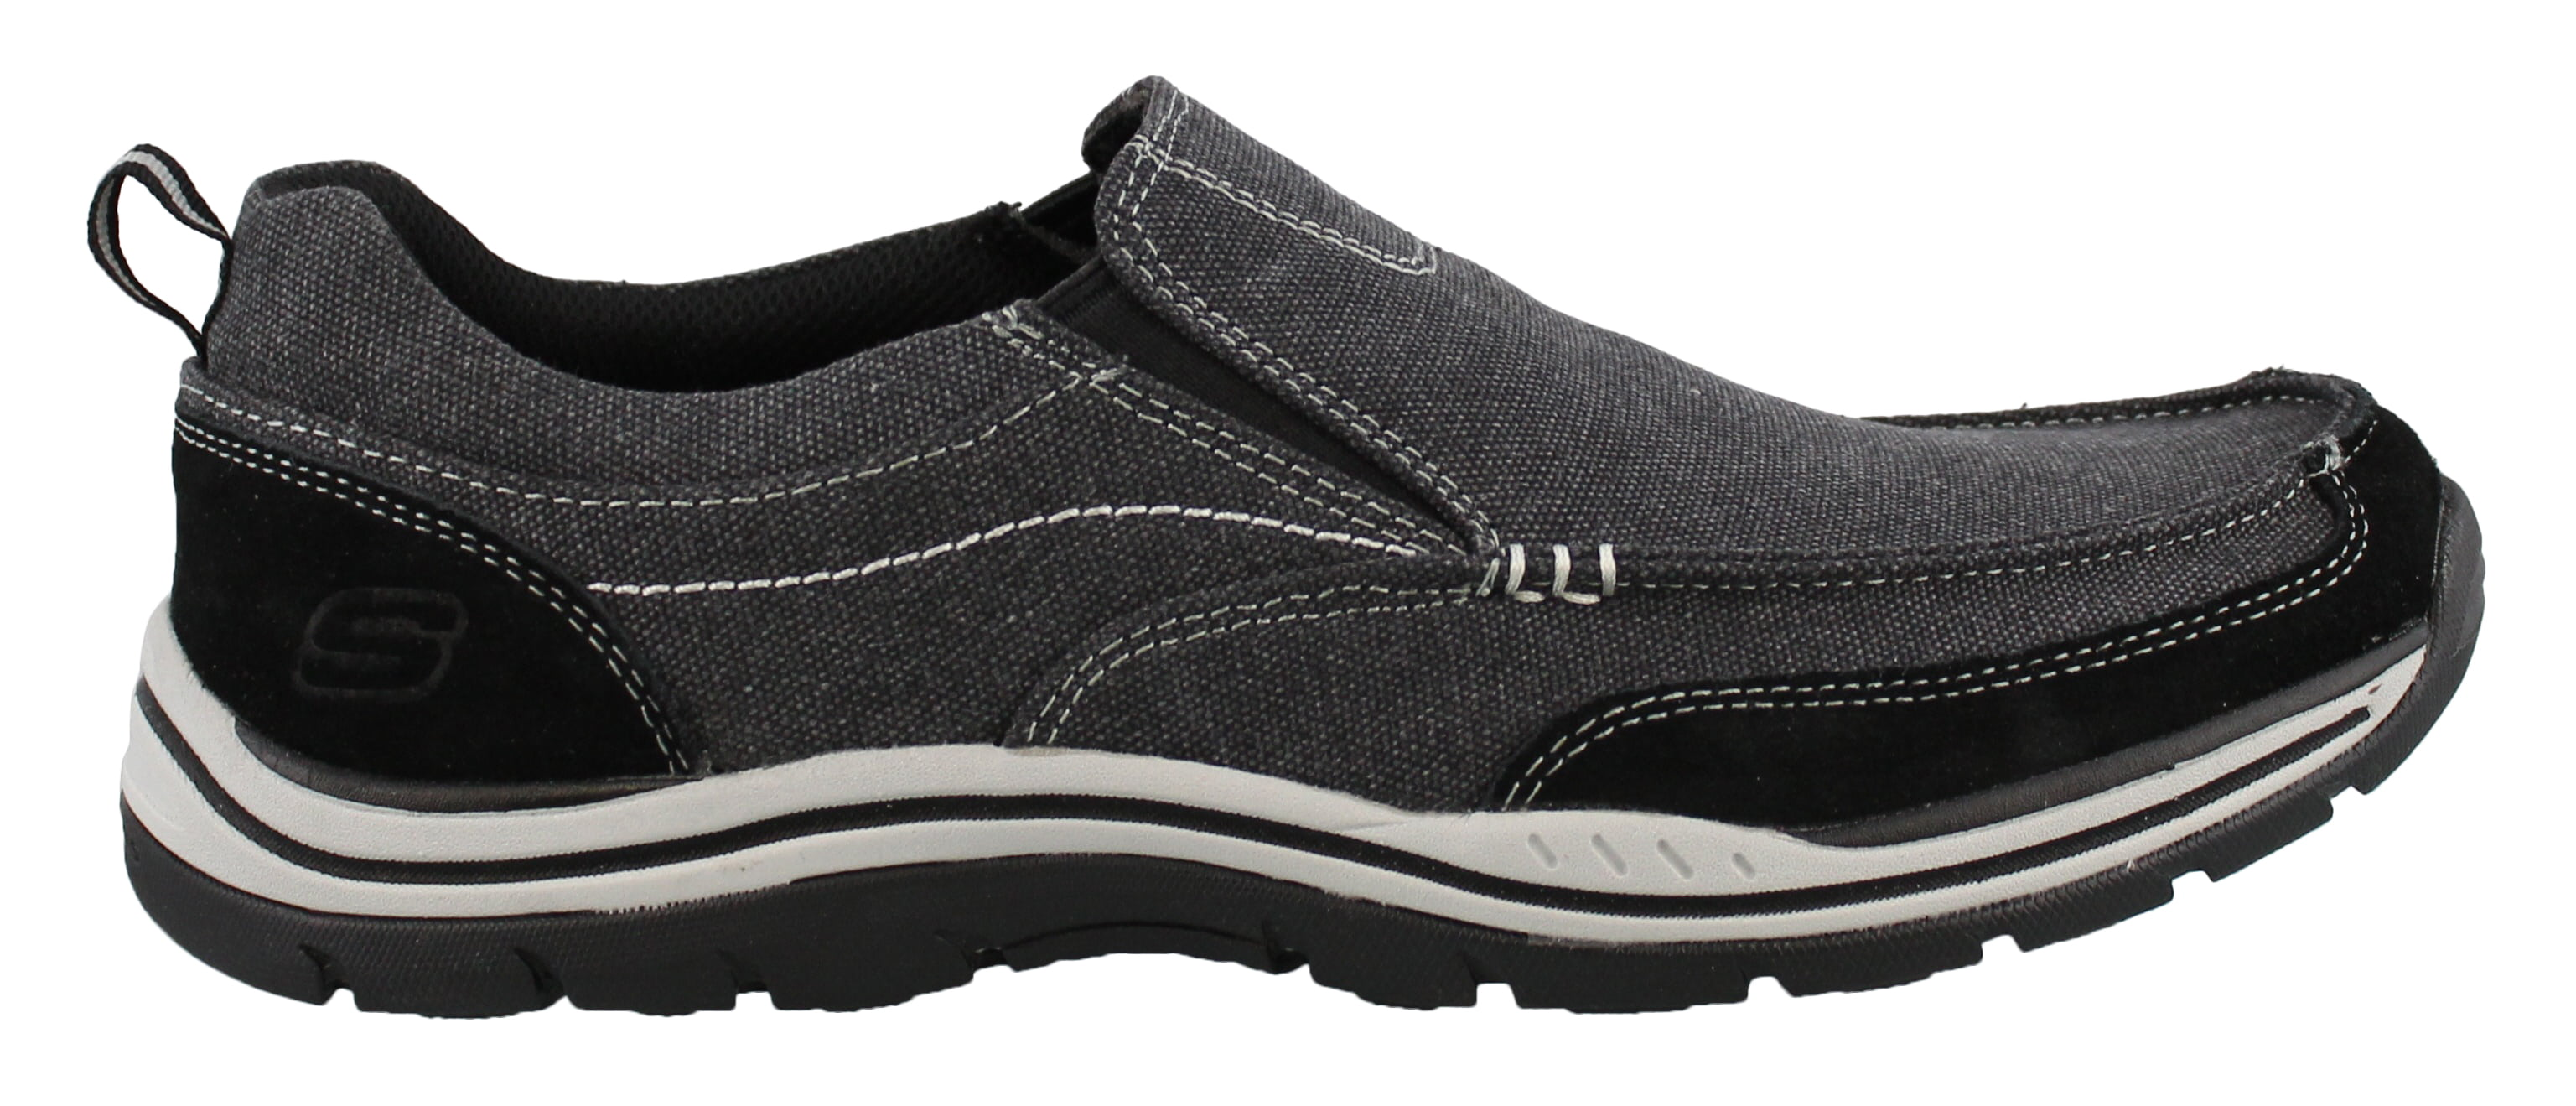 Men's Skechers, Expected Tomen Slip on Shoes by Skechers